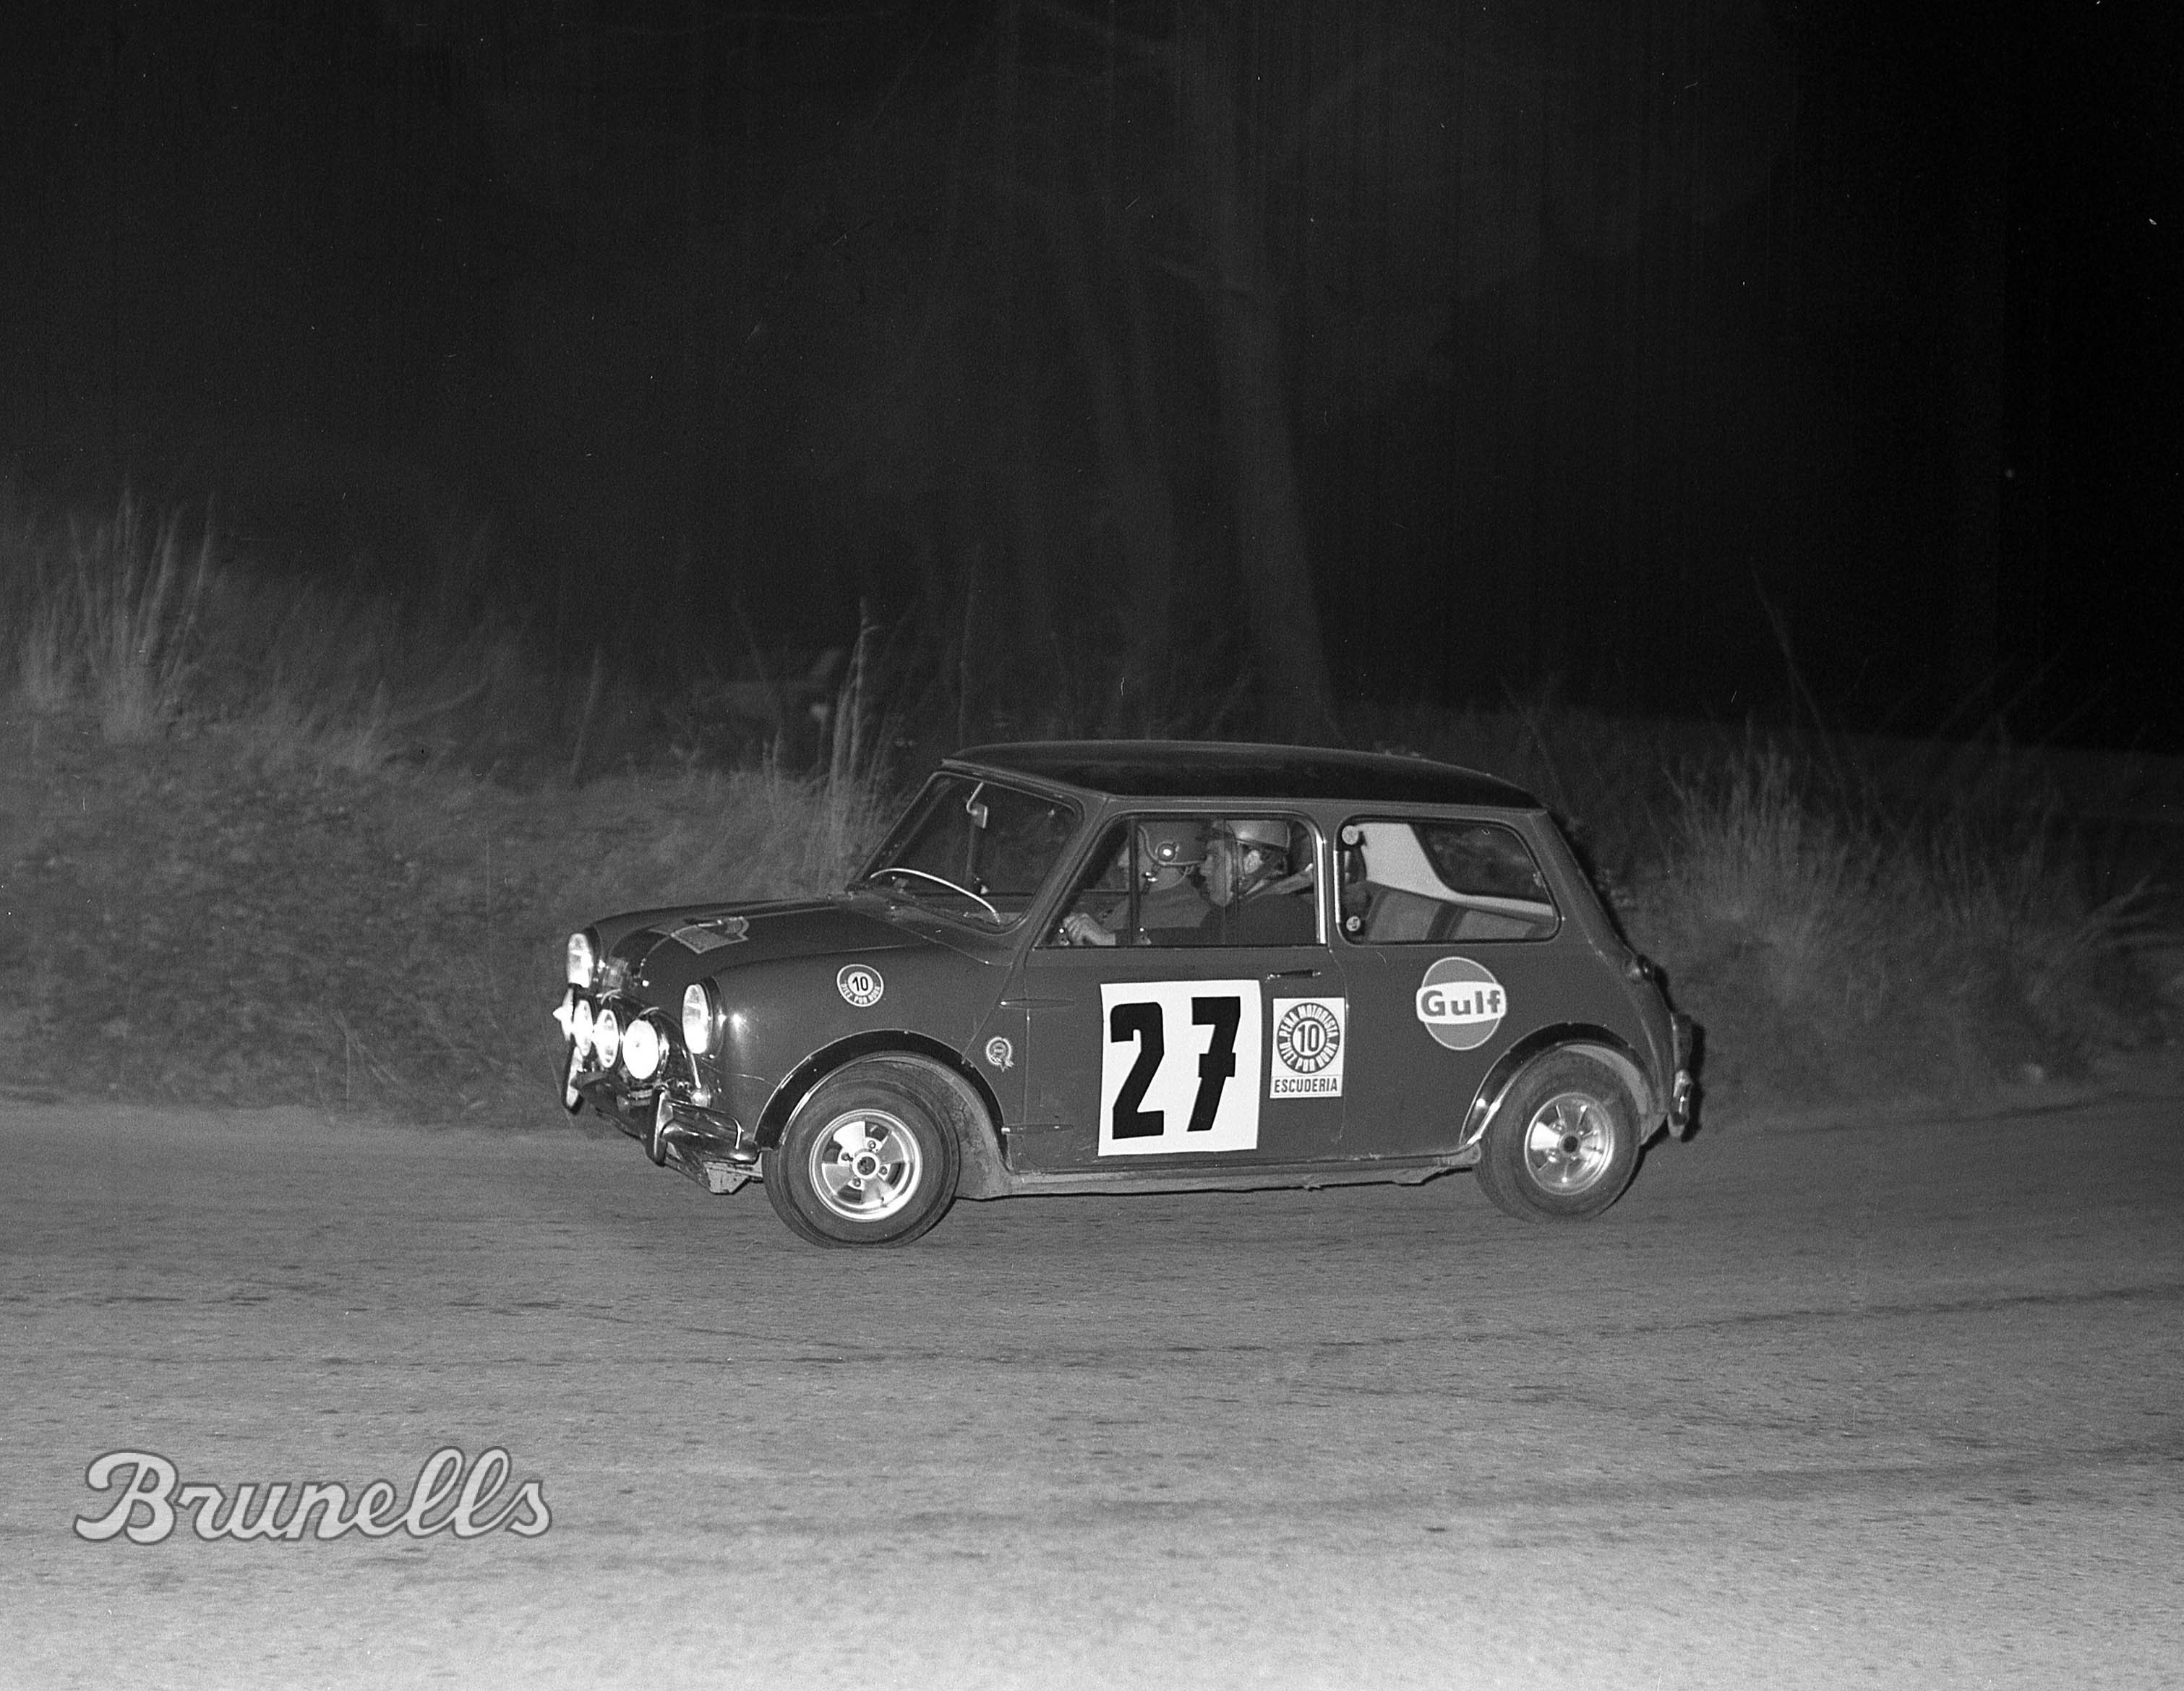 1969 BRUNELLS - Mini Cooper S - Rally Costa Brava - 8 Scratch